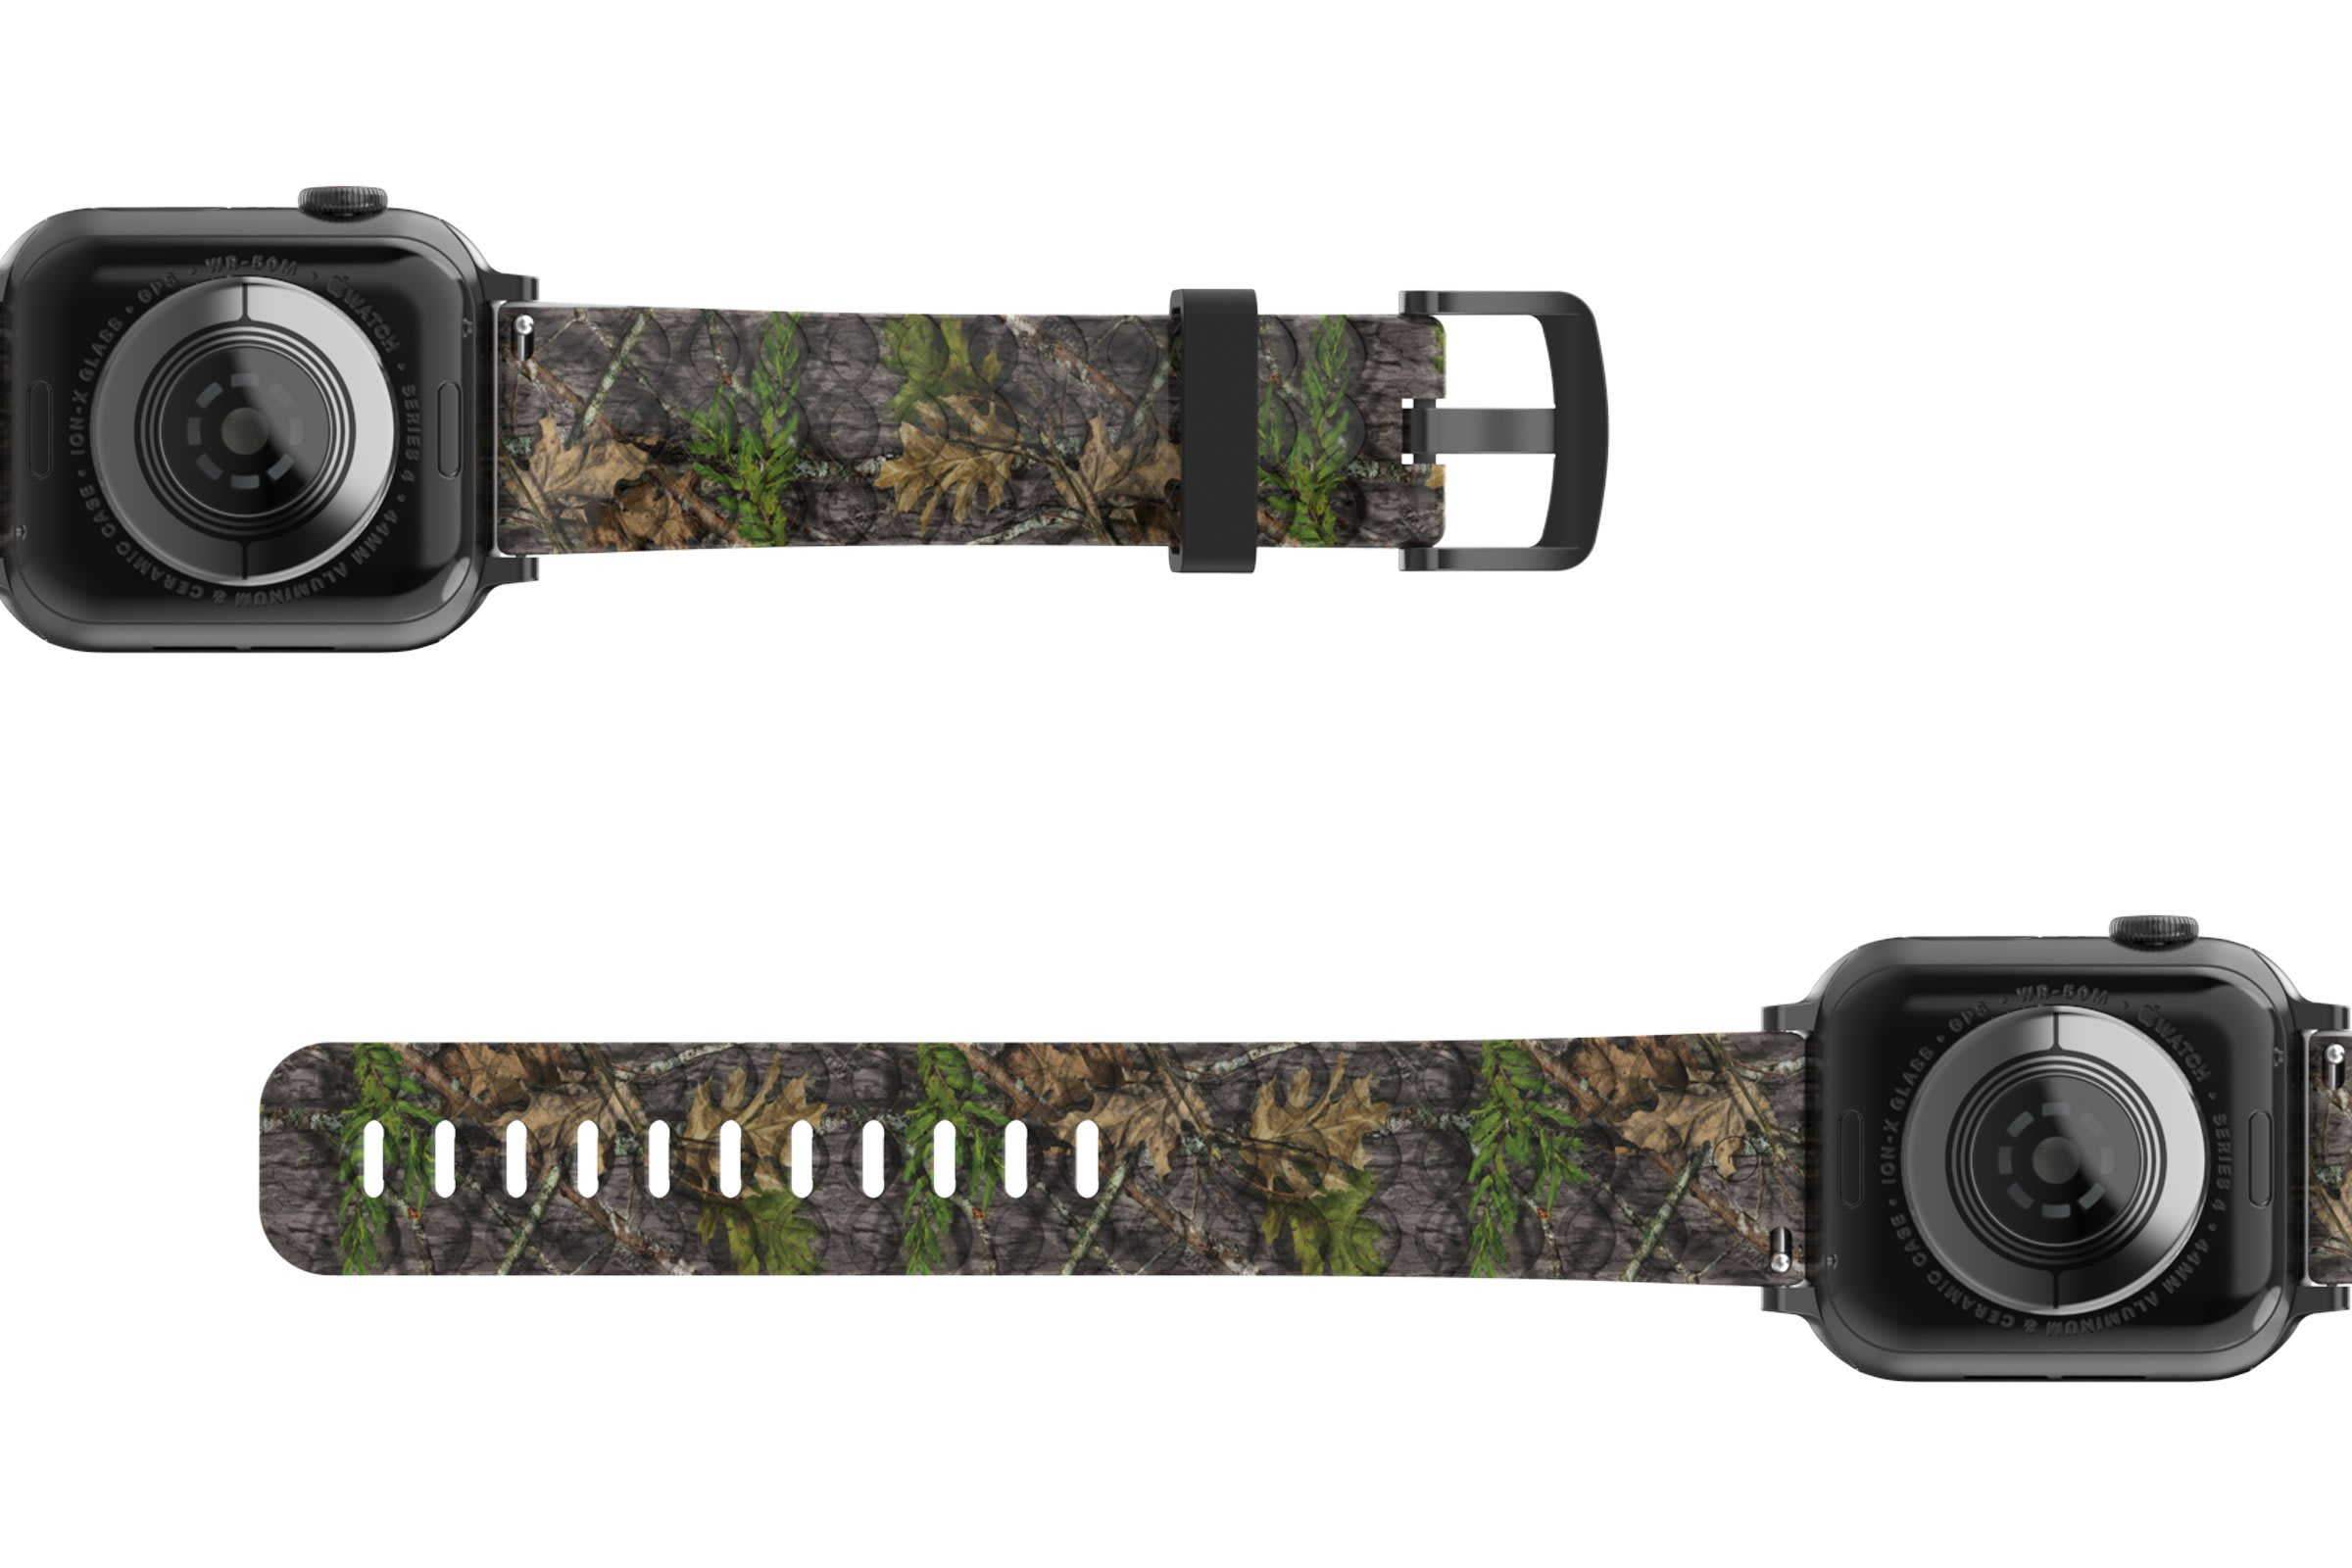 NWTF Mossy Oak Obsession Apple   watch band with gray hardware viewed bottom up